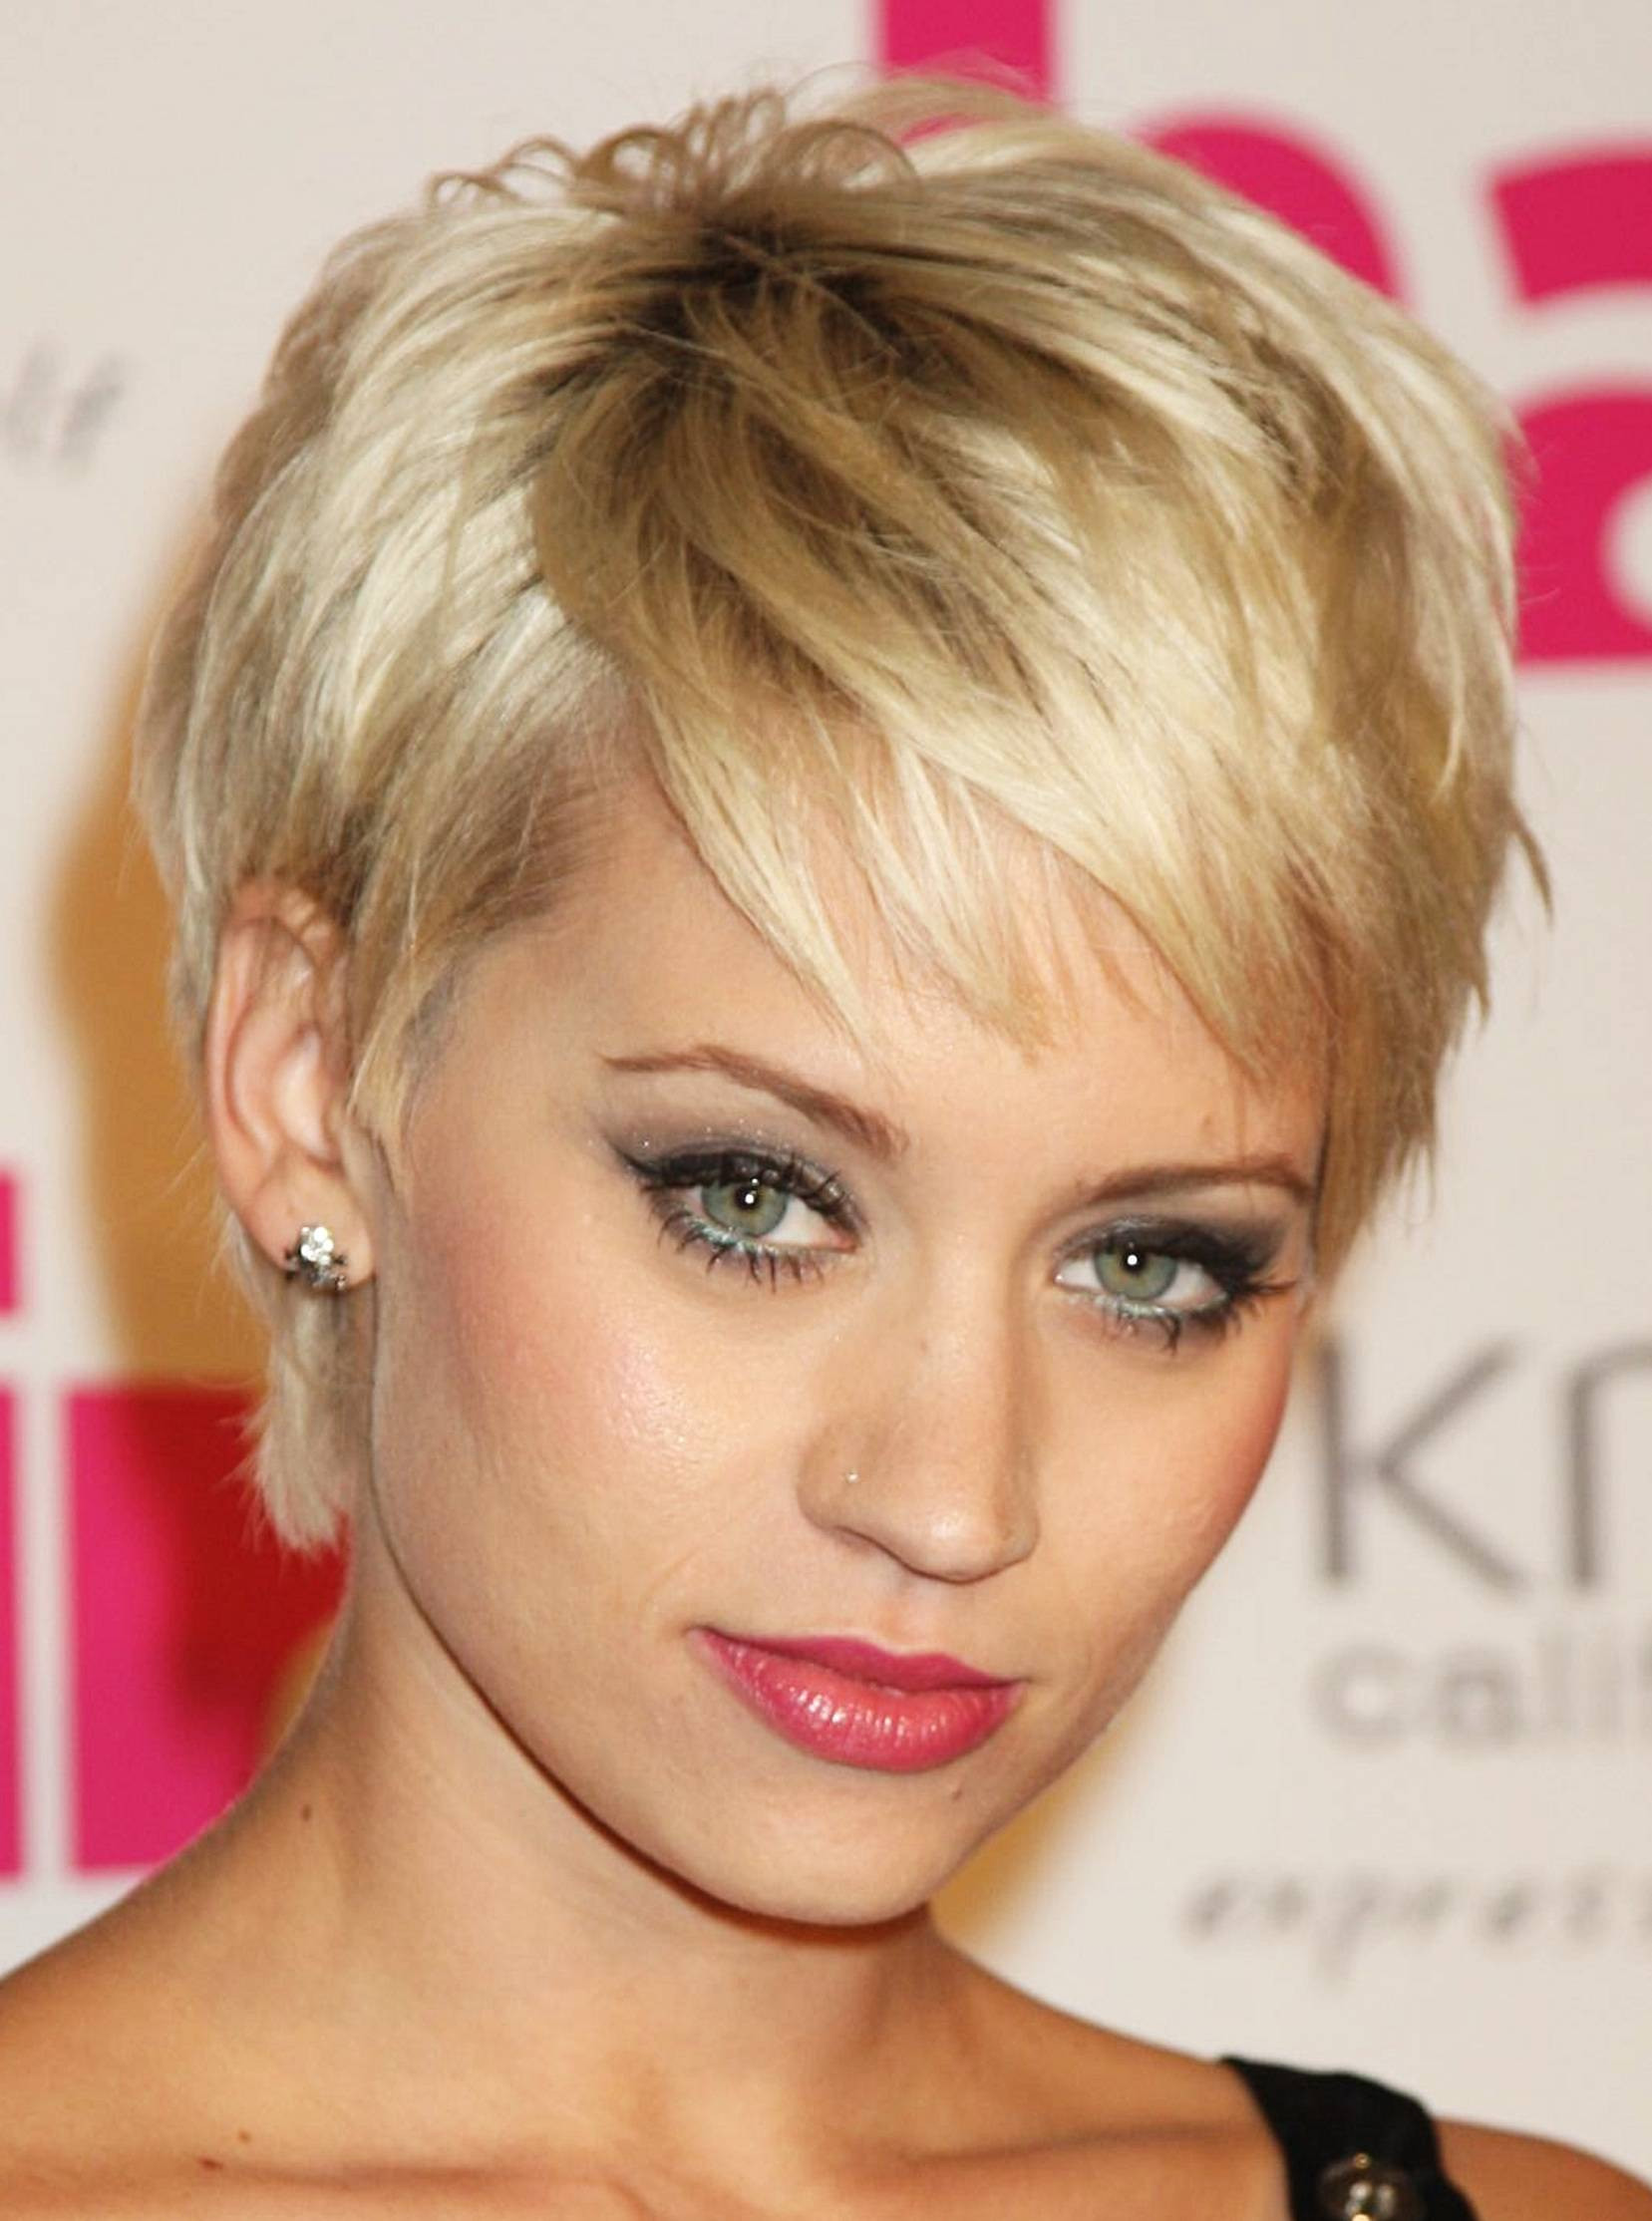 Best ideas about Short Hairstyles Cuts For Women . Save or Pin Short Rock Hair Style Women Hairstyles Now.